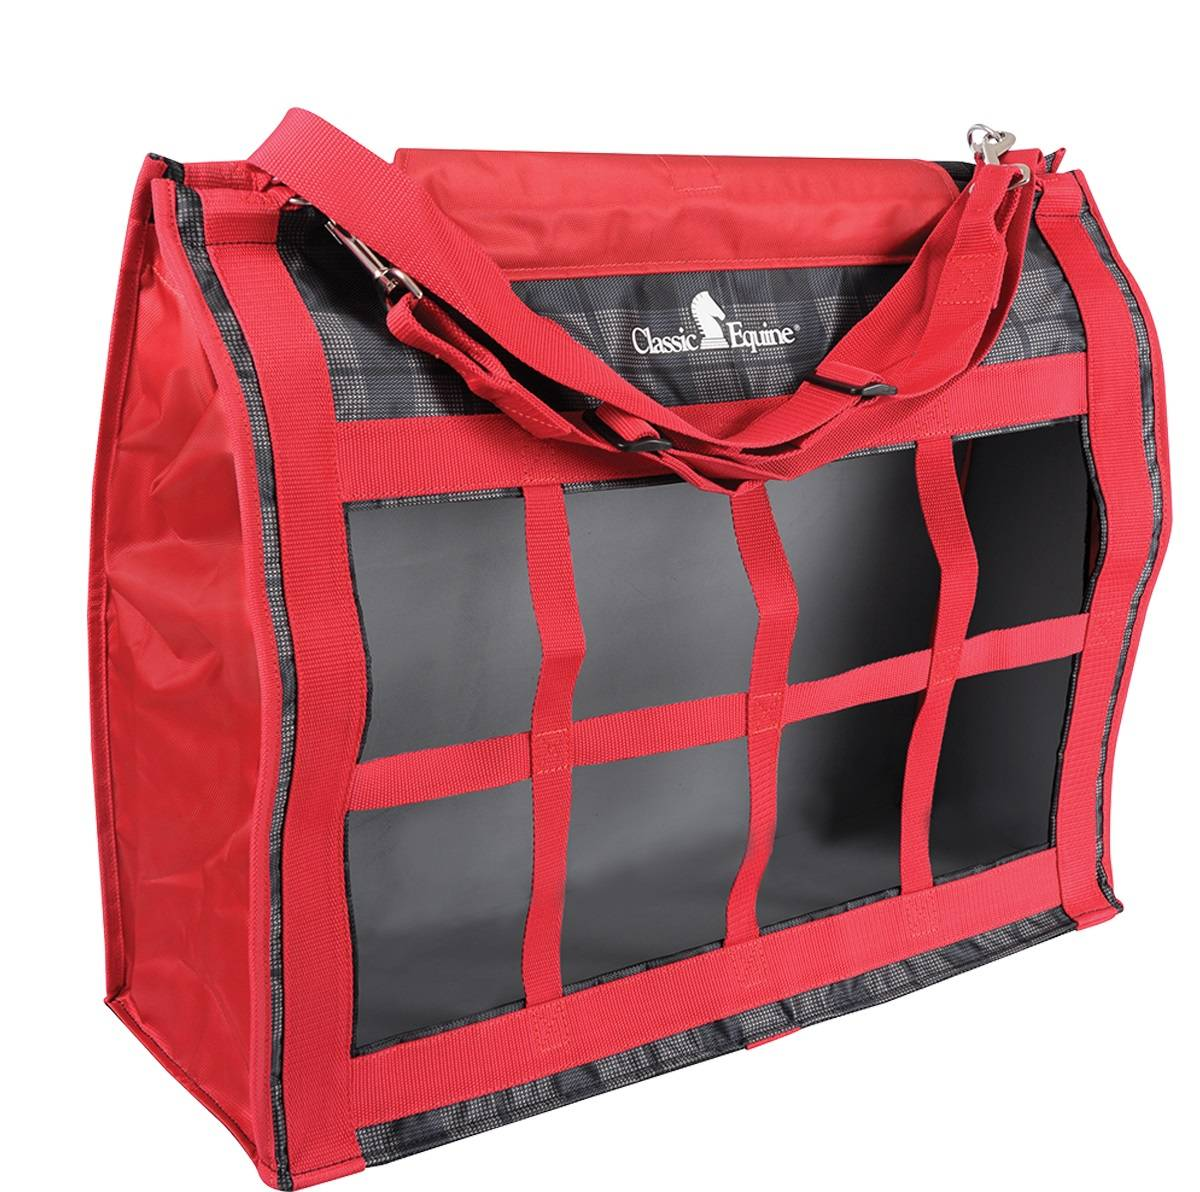 Classic Equine Topload Hay Bag - Plaid Red